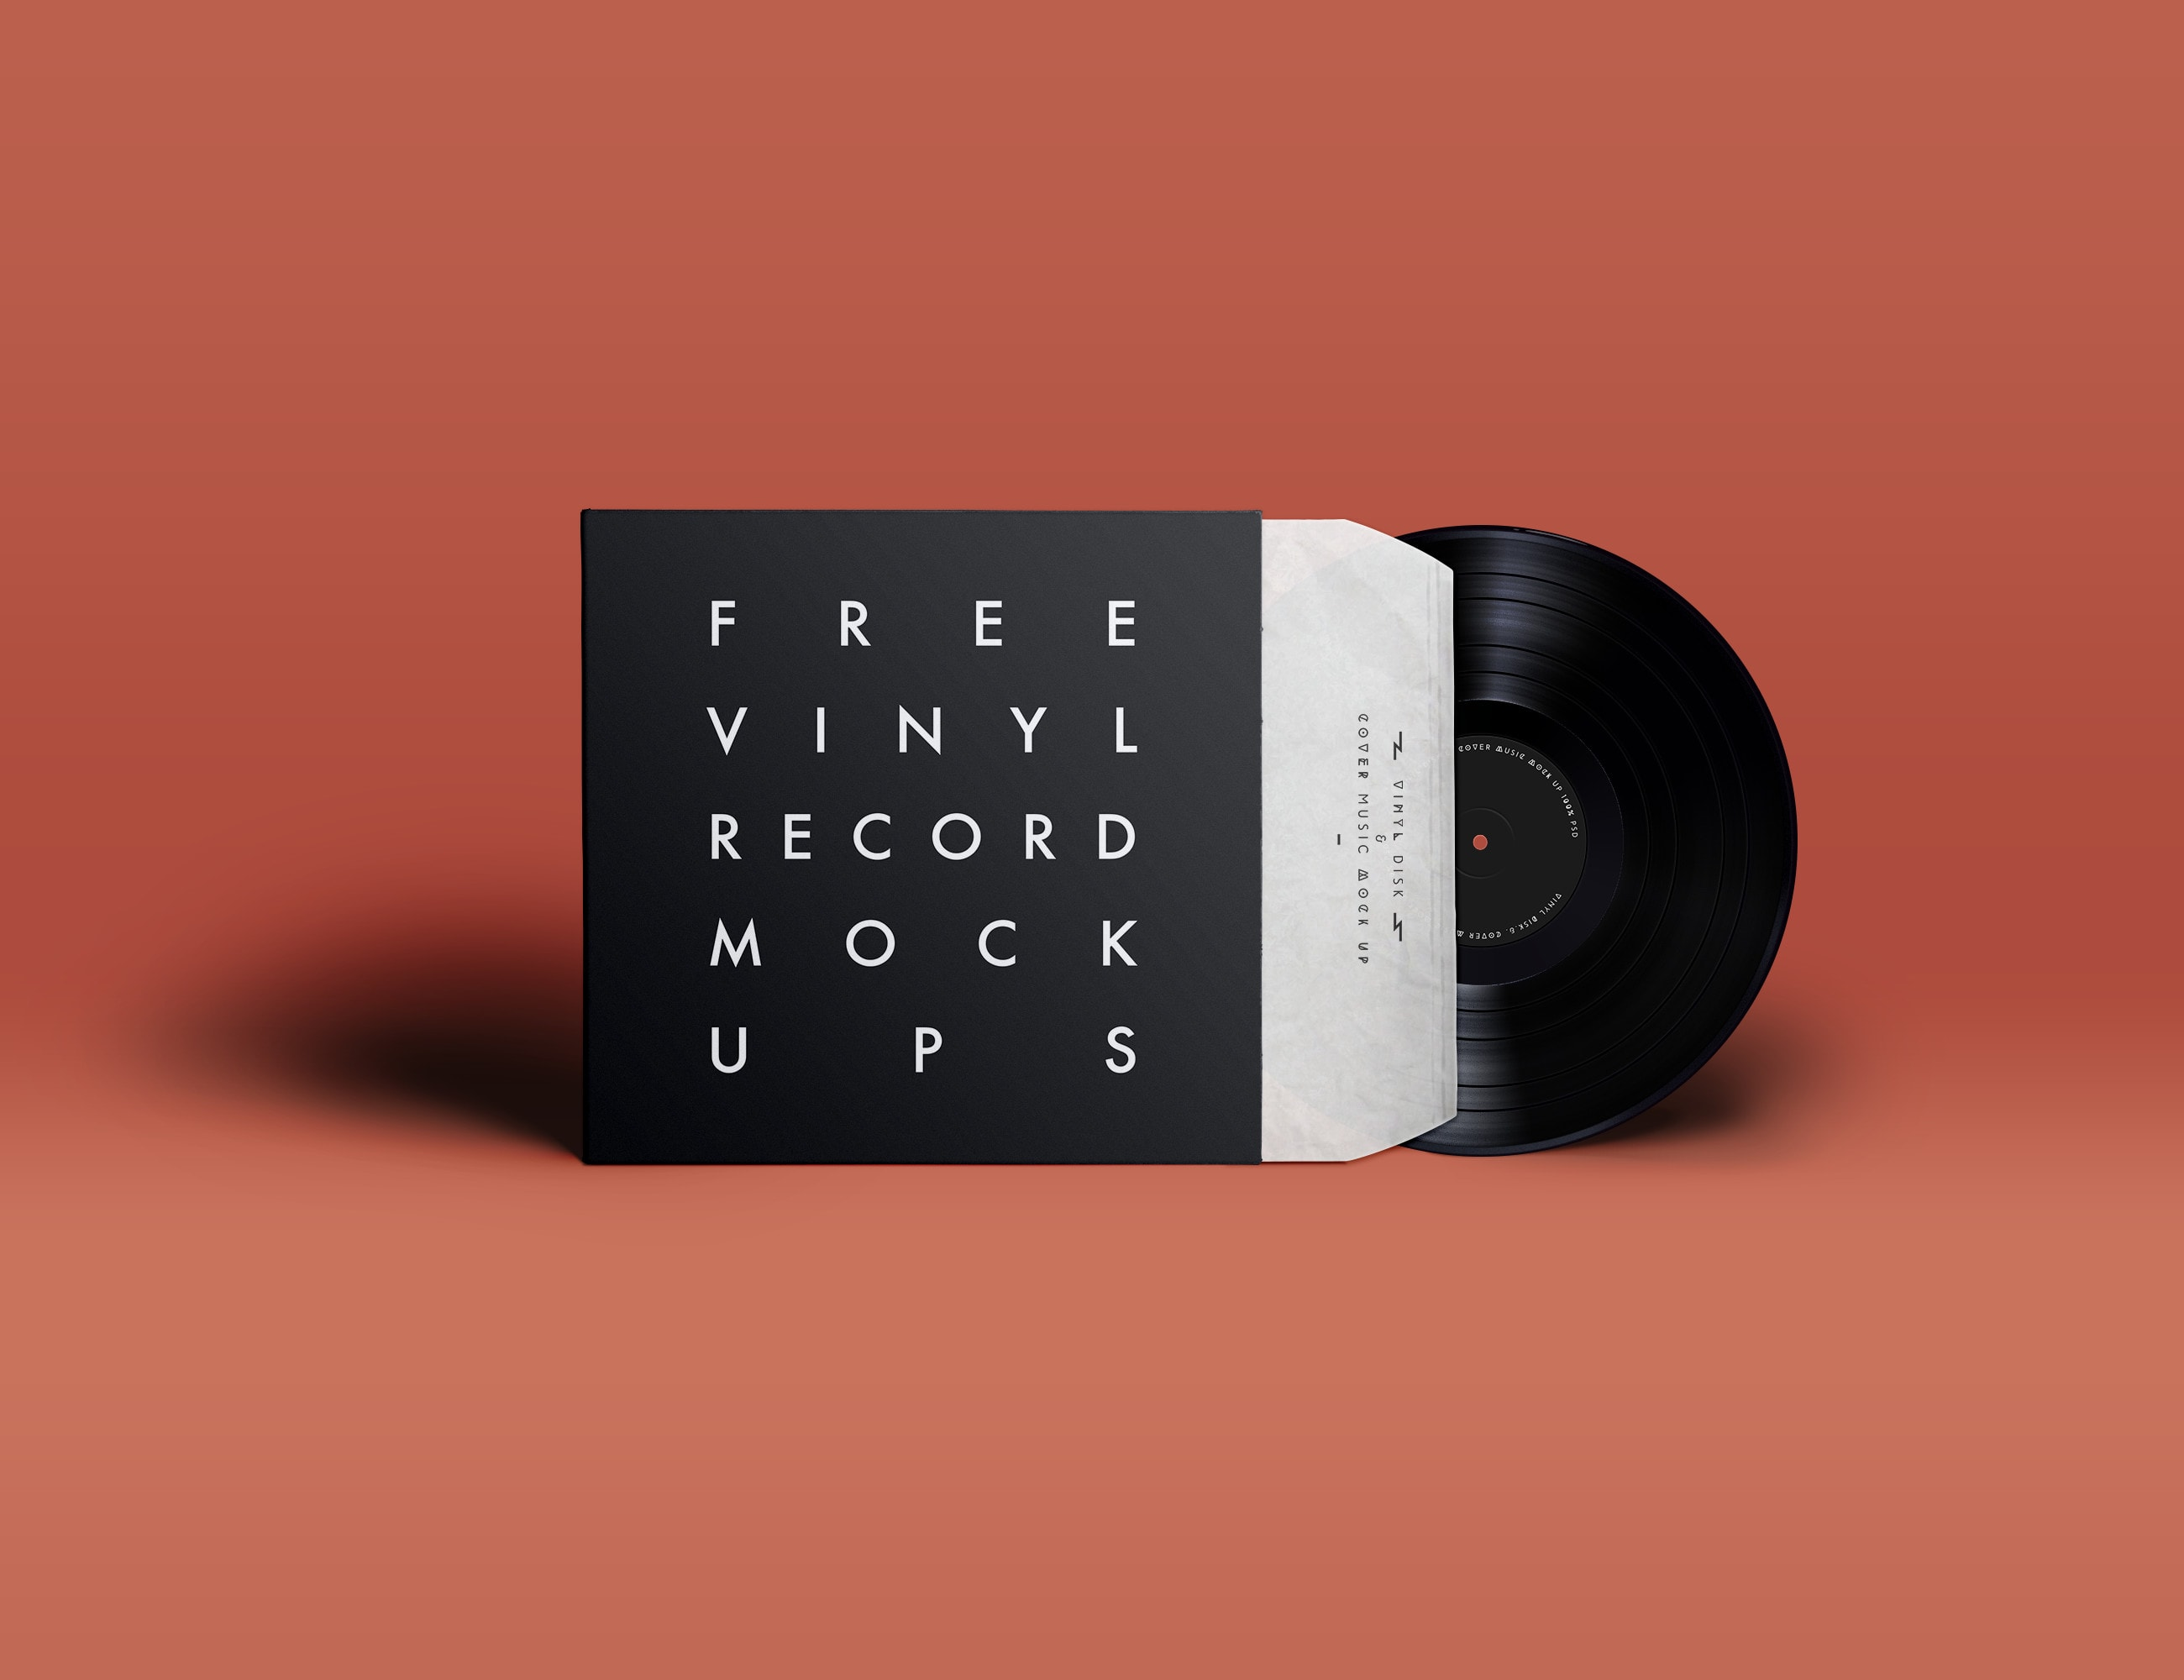 Iphone Wallpaper Psd Template The 5 Best Free Vinyl Record Psd Mock Ups Hipsthetic